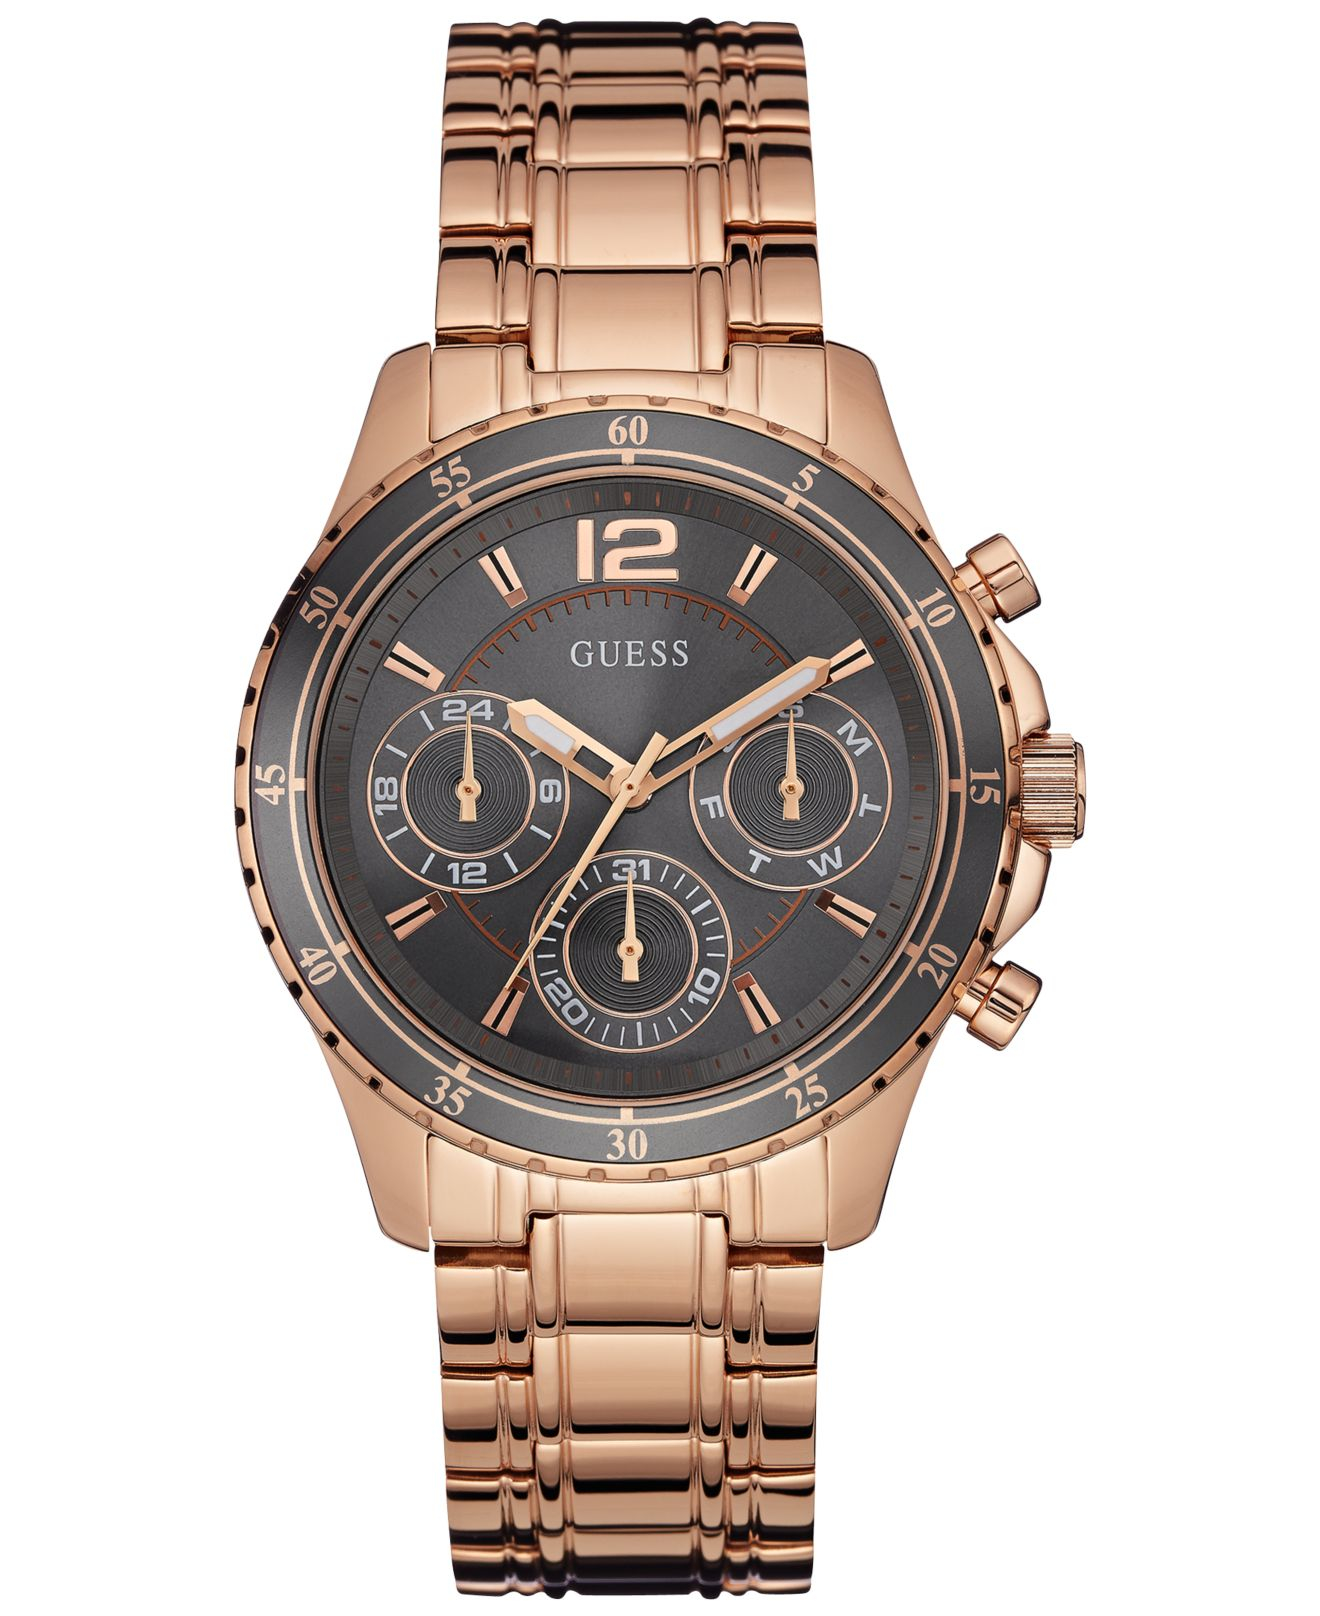 Buy Anne Klein Women's 10/RGLP Rose Gold-Tone Watch with Leather Band and other Wrist Watches at shopteddybears9.ml Our wide selection is eligible for free shipping and free returns.